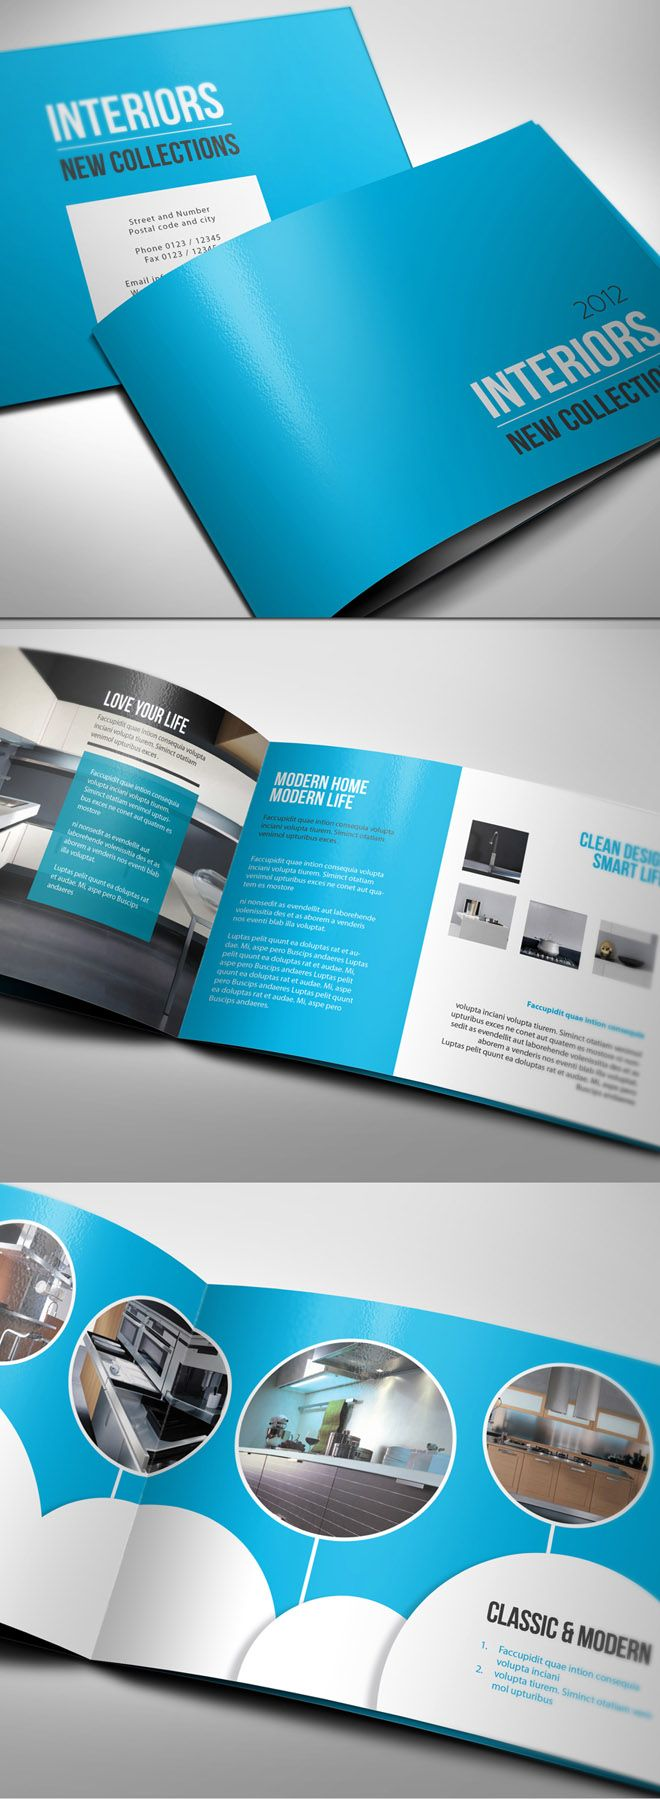 26 Best and Creative Brochure Design Ideas for your inspiration. Follow us www.pinterest.com/webneel